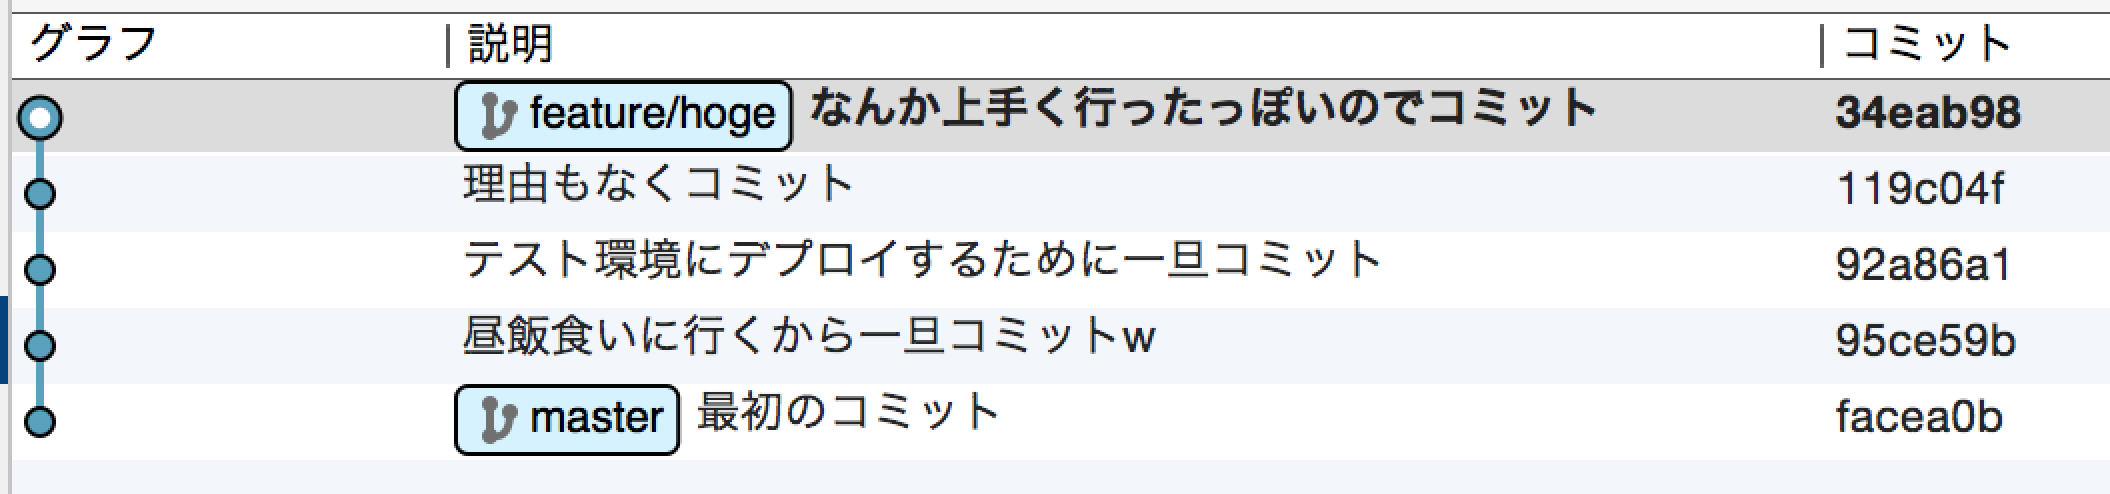 150614-0005.png